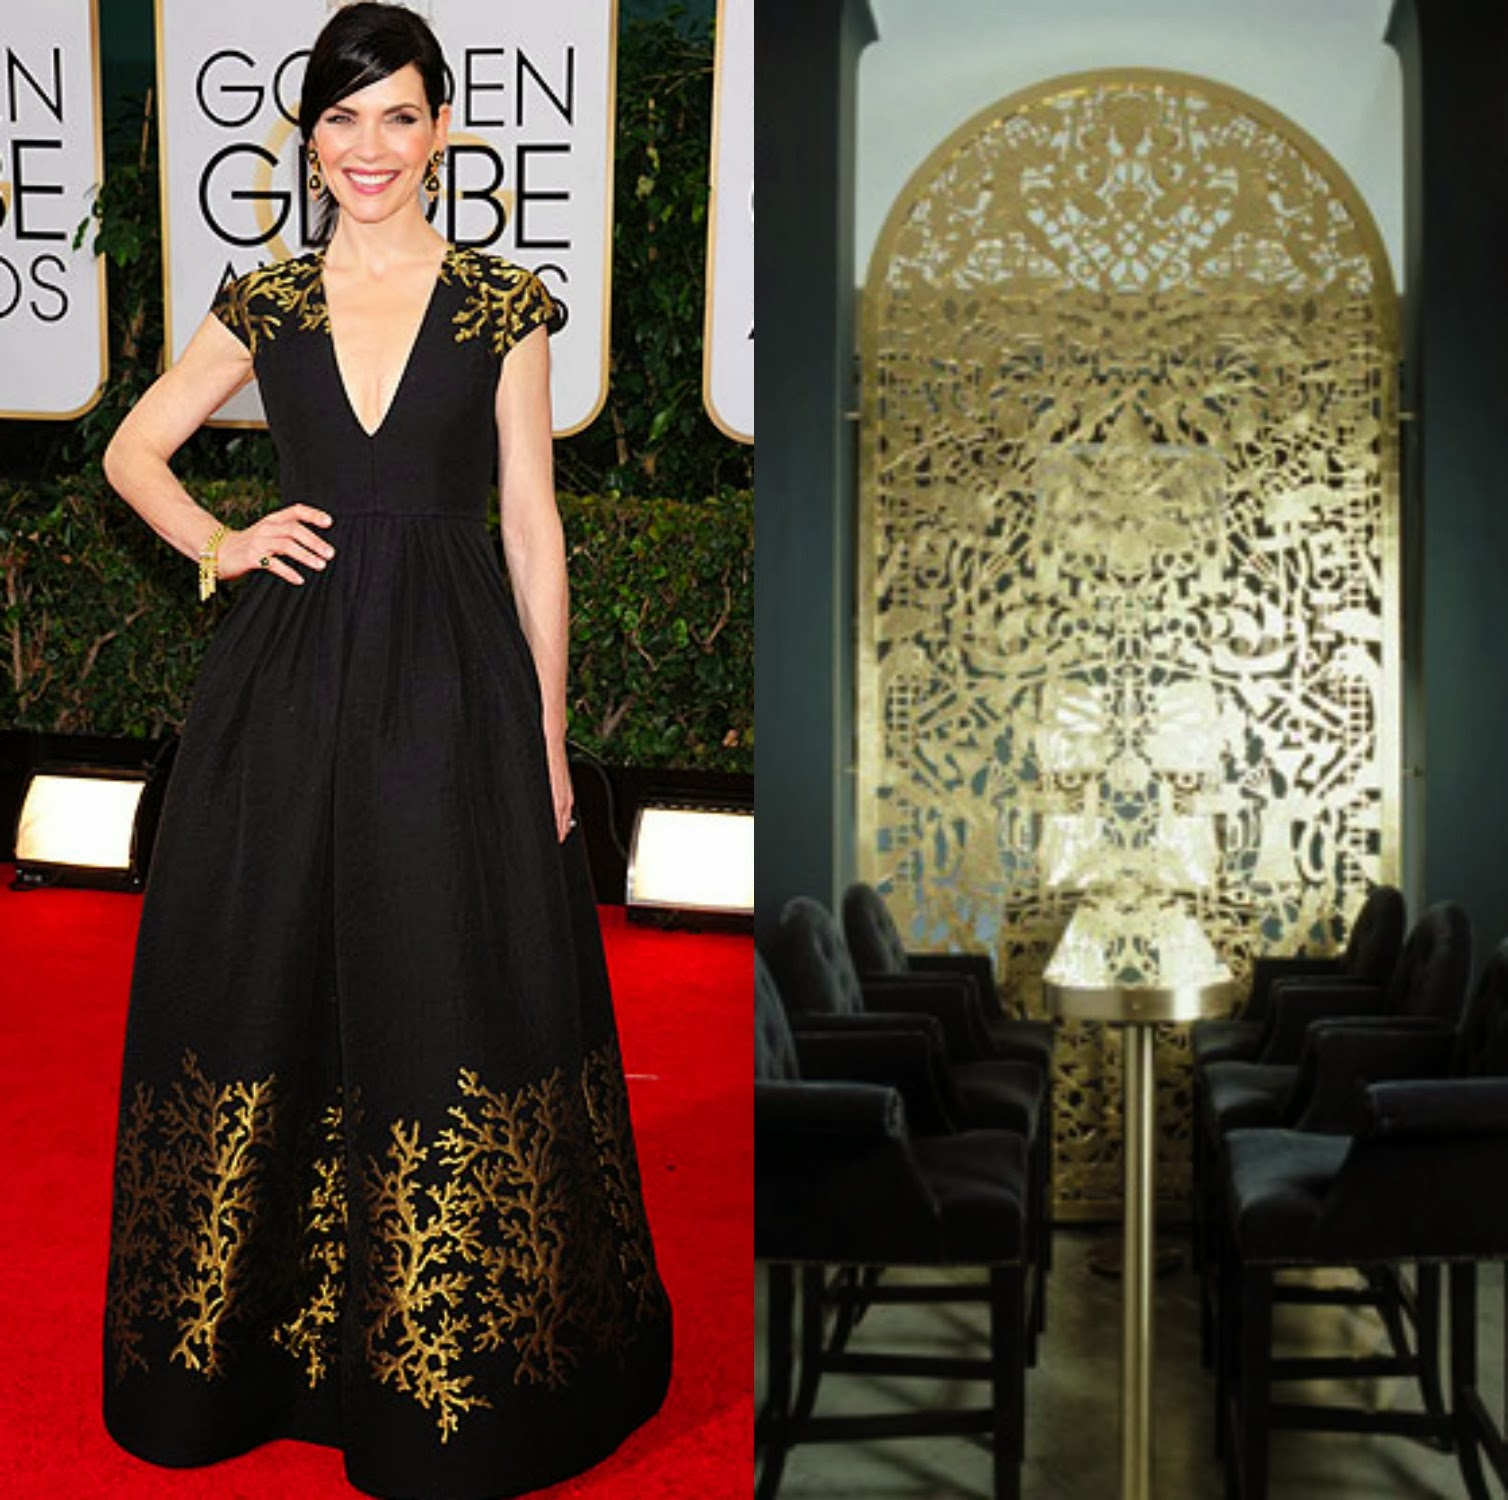 Julianna Margulies Golden Globes 2014